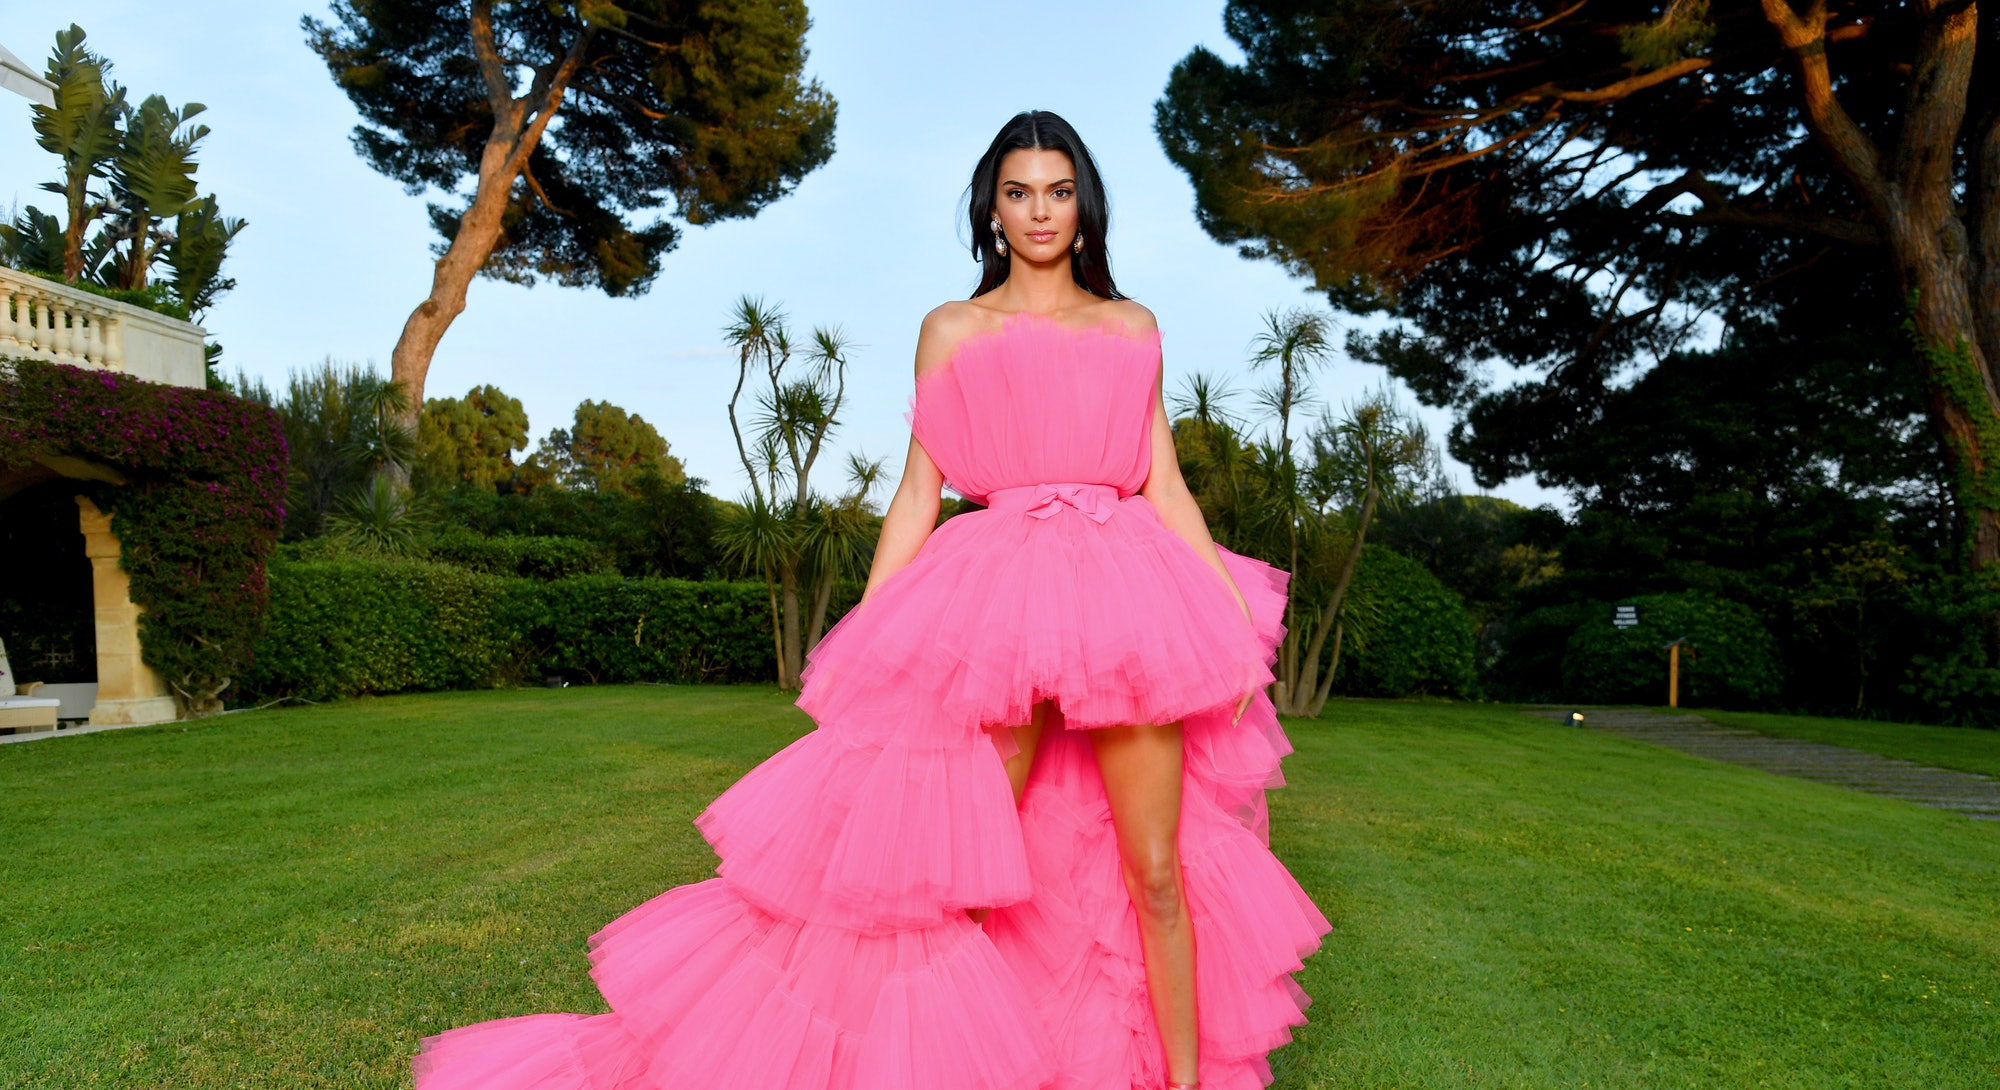 Kendall Jenner's Style Evolution, From Tween Reality Star To Supermodel